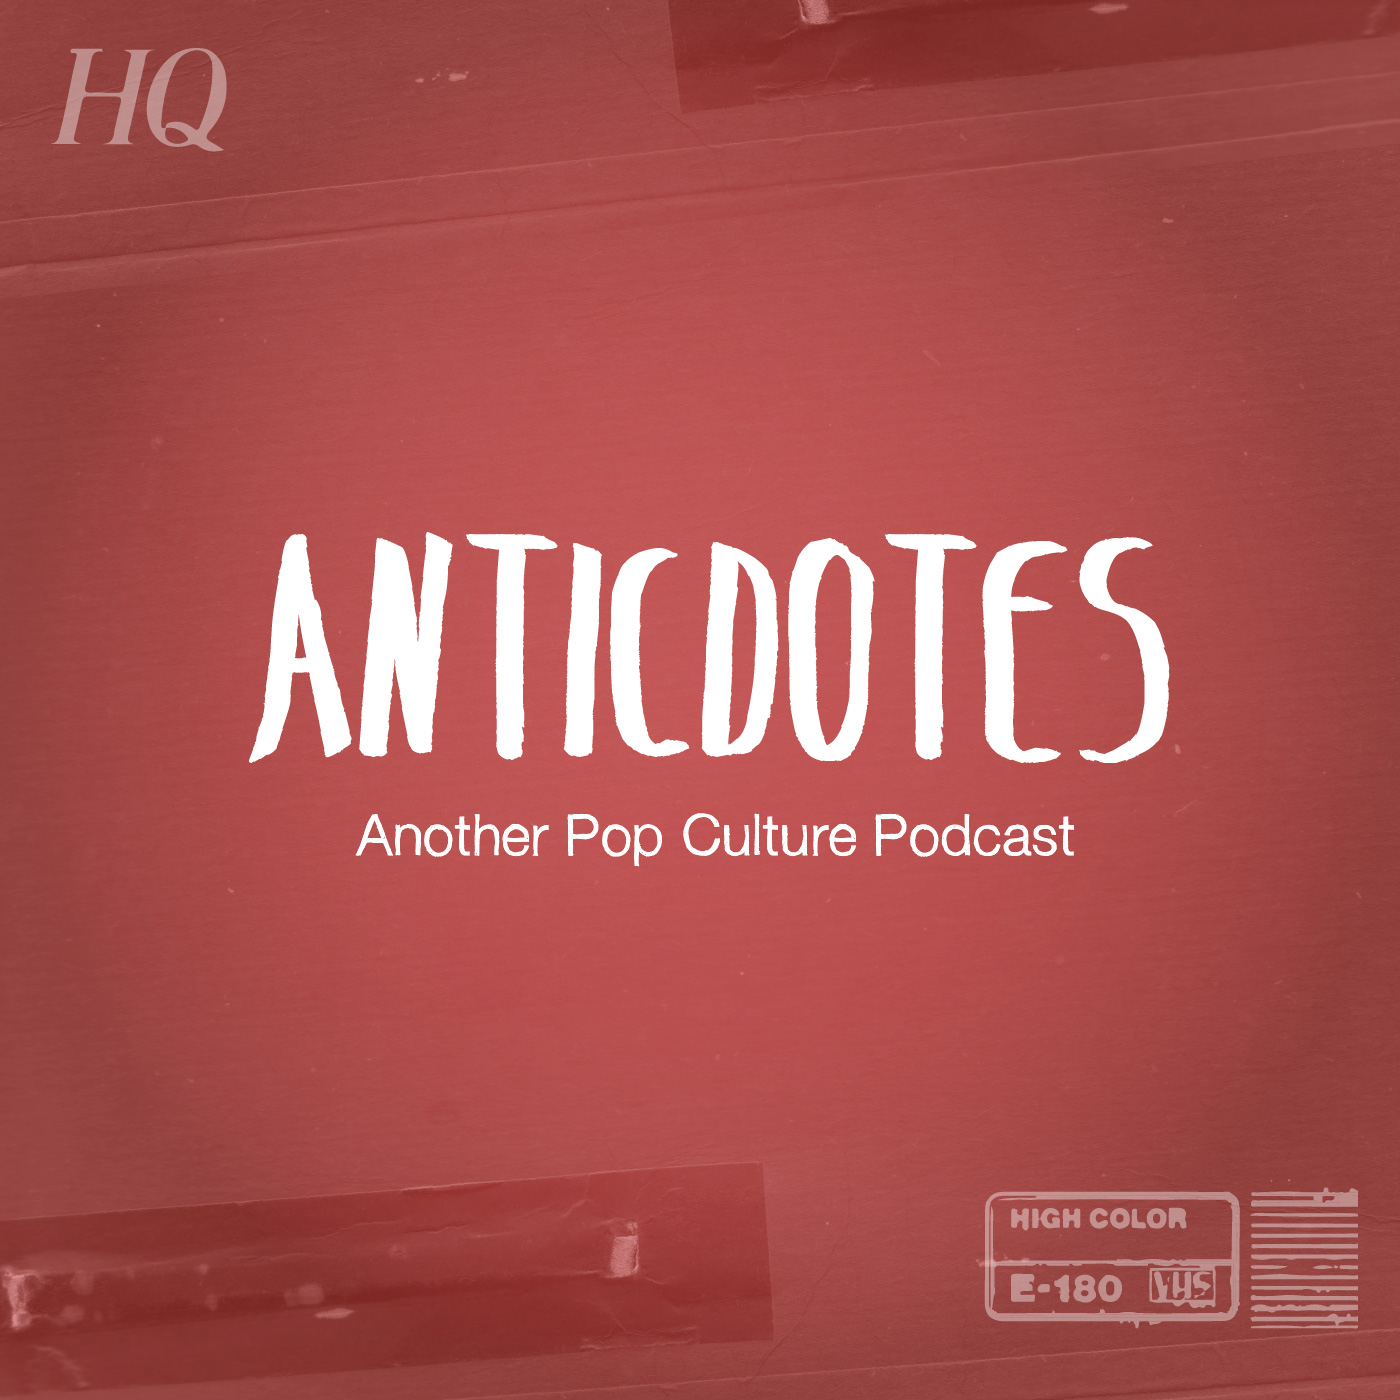 anticdotes: Another Pop Culture Podcast